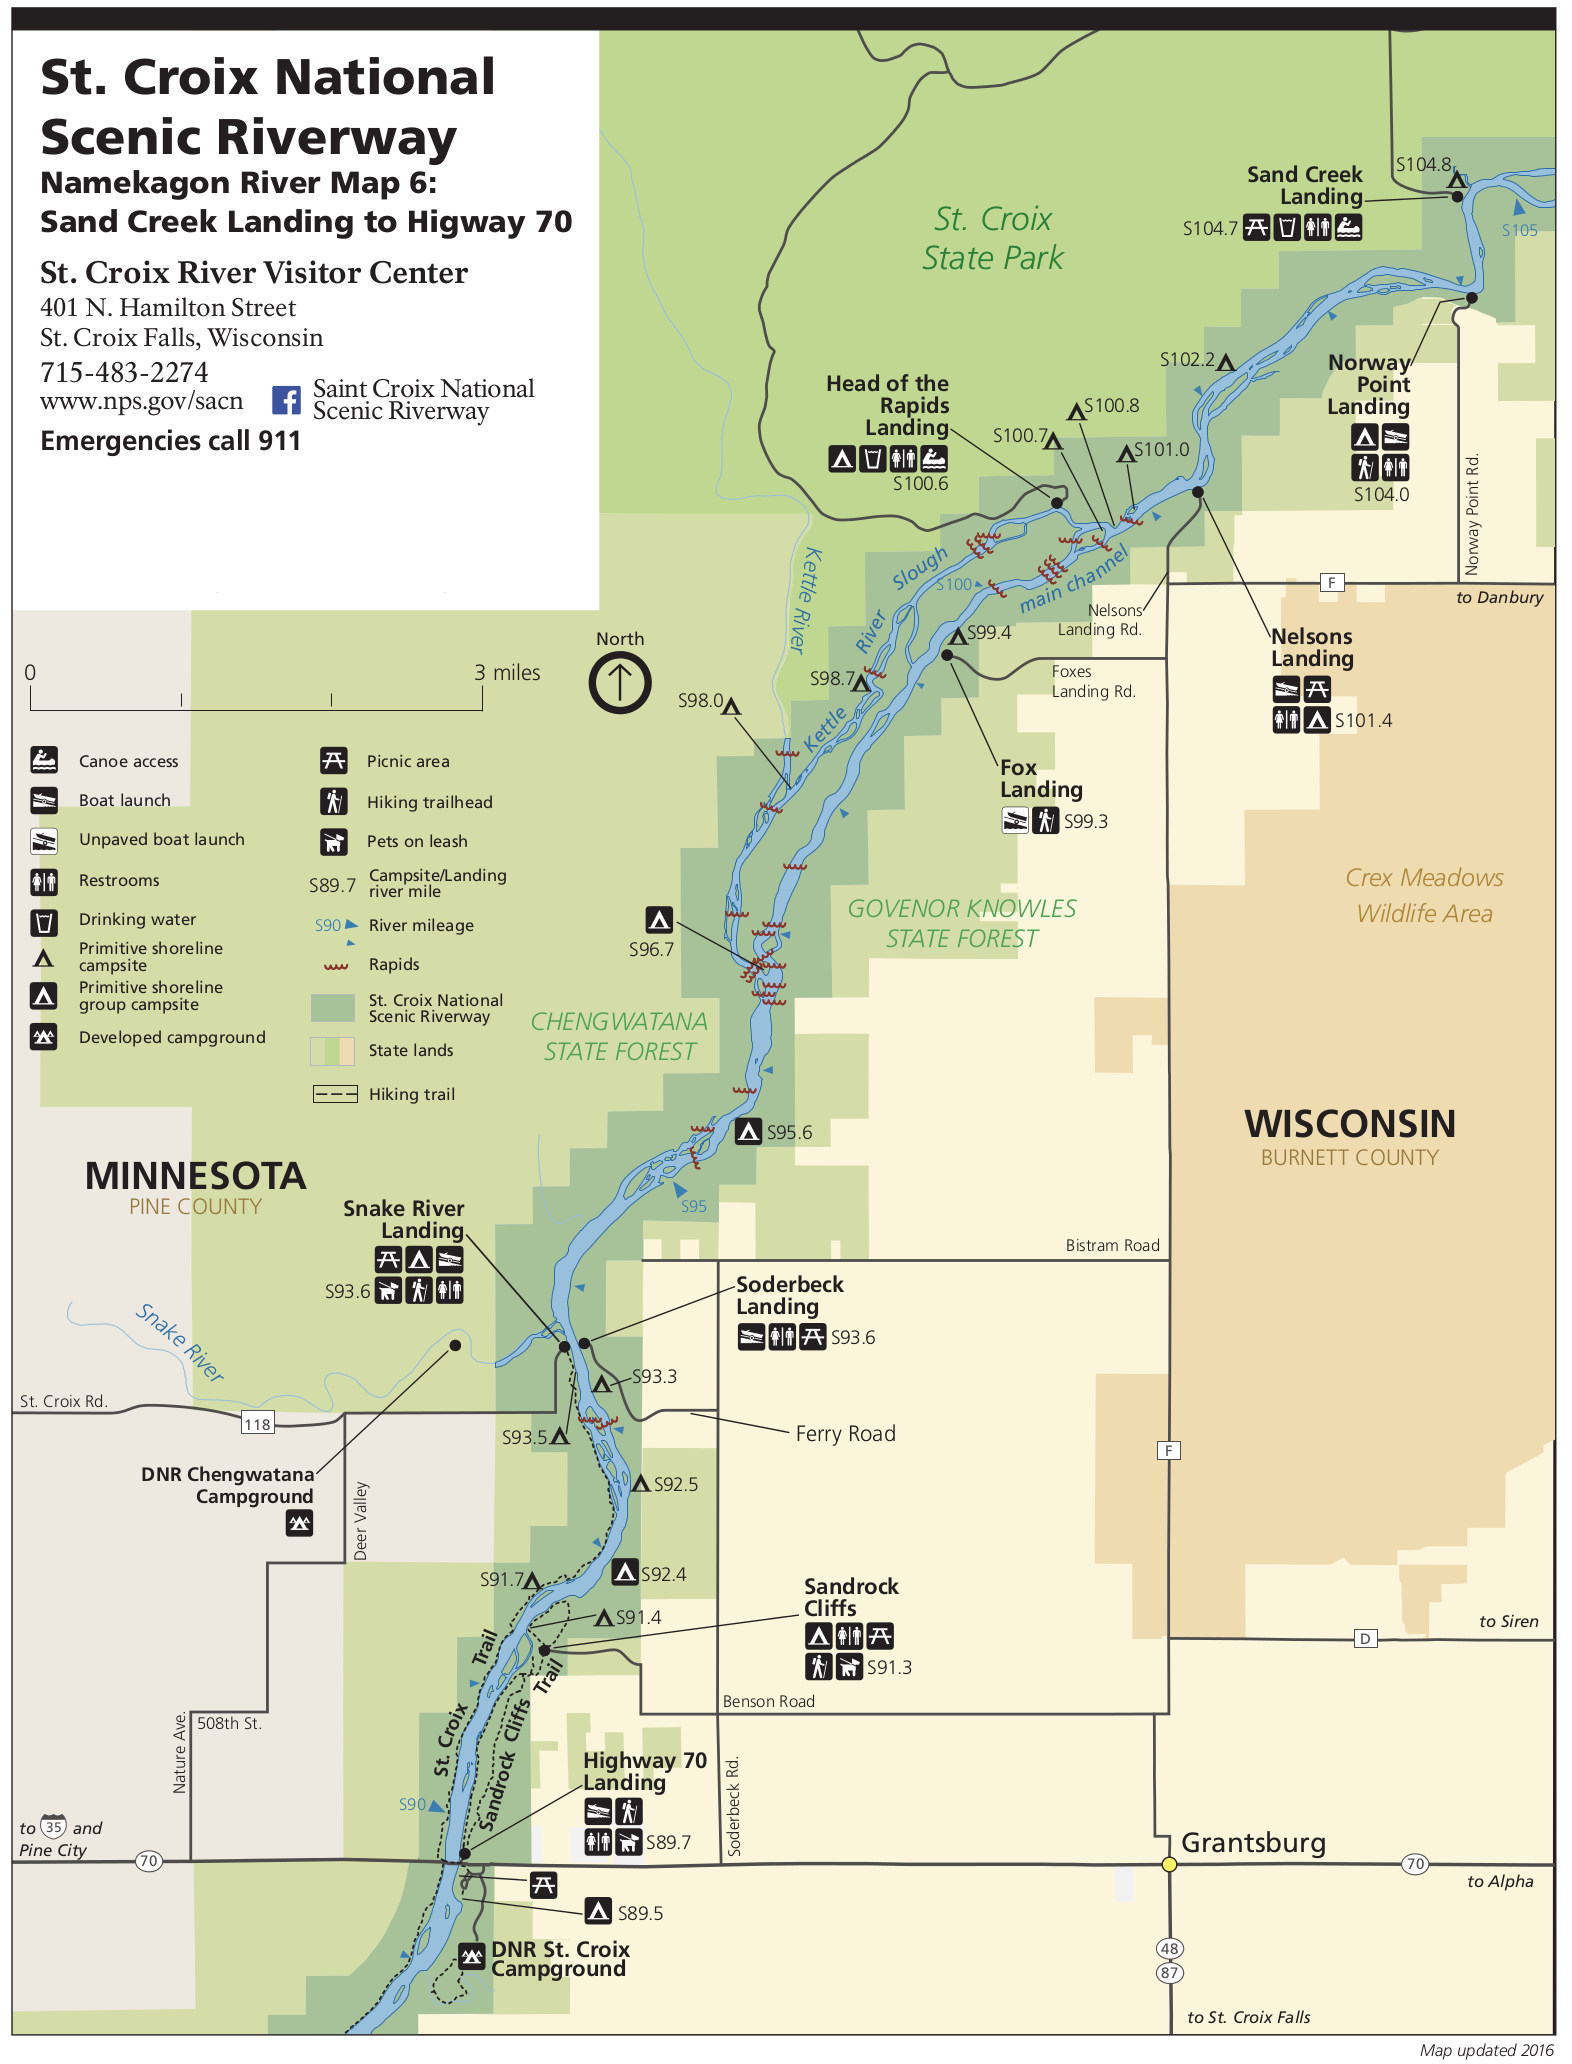 saint croix river map 6